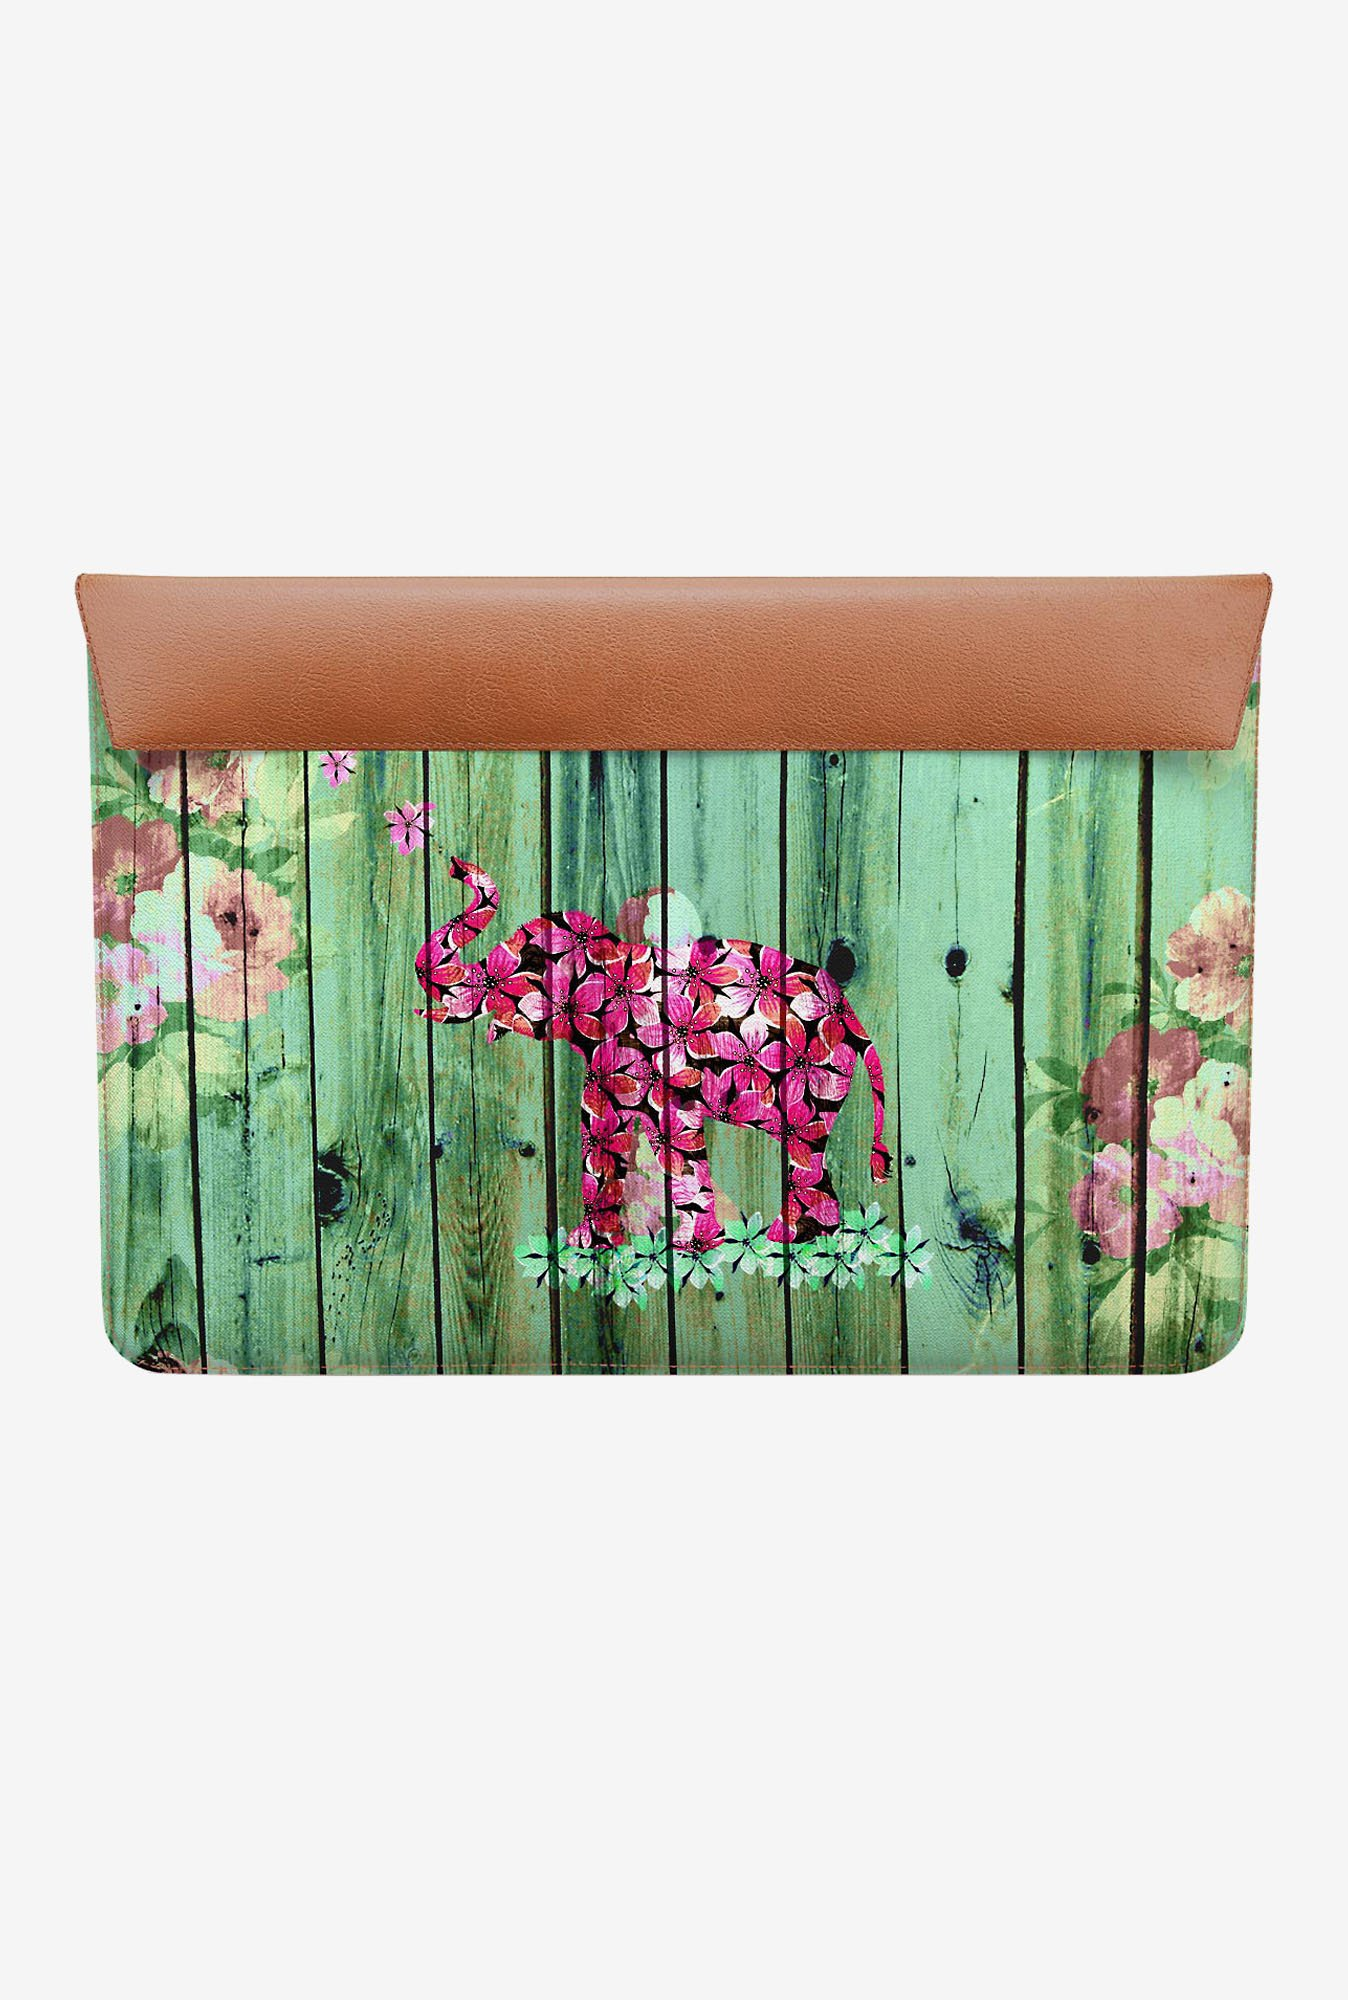 DailyObjects Flower Elephant MacBook Air 11 Envelope Sleeve